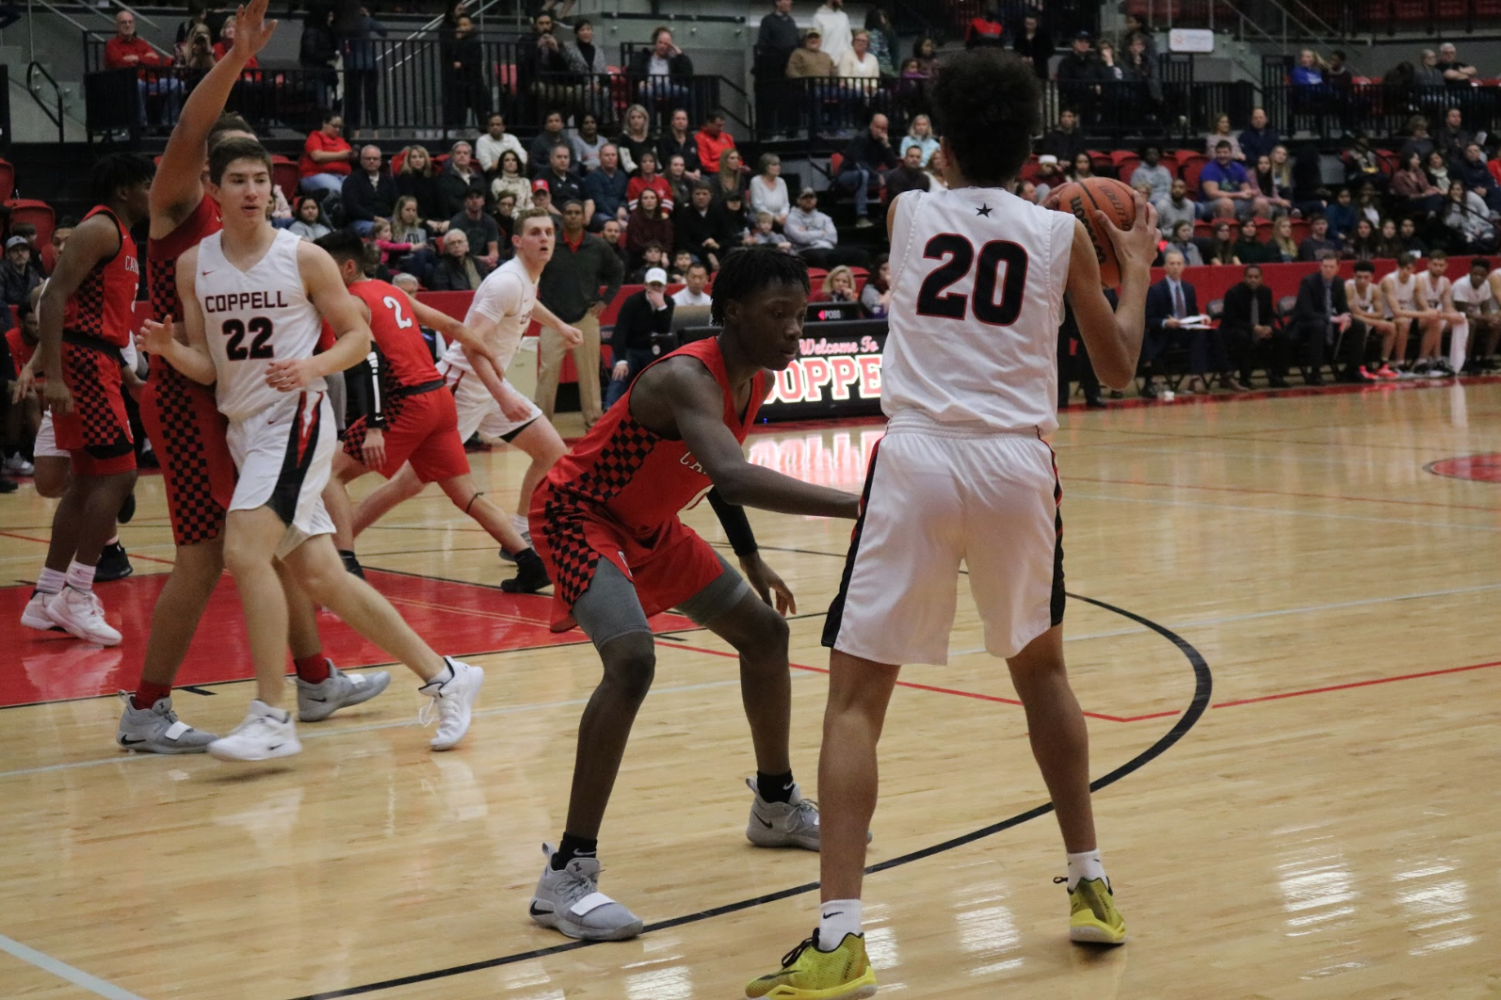 Coppell High School freshman Anthony Black protects the ball from the Macarthur Cardinals. The Coppell varsity basketball team won 56-55 against the Macarthur Cardinals.